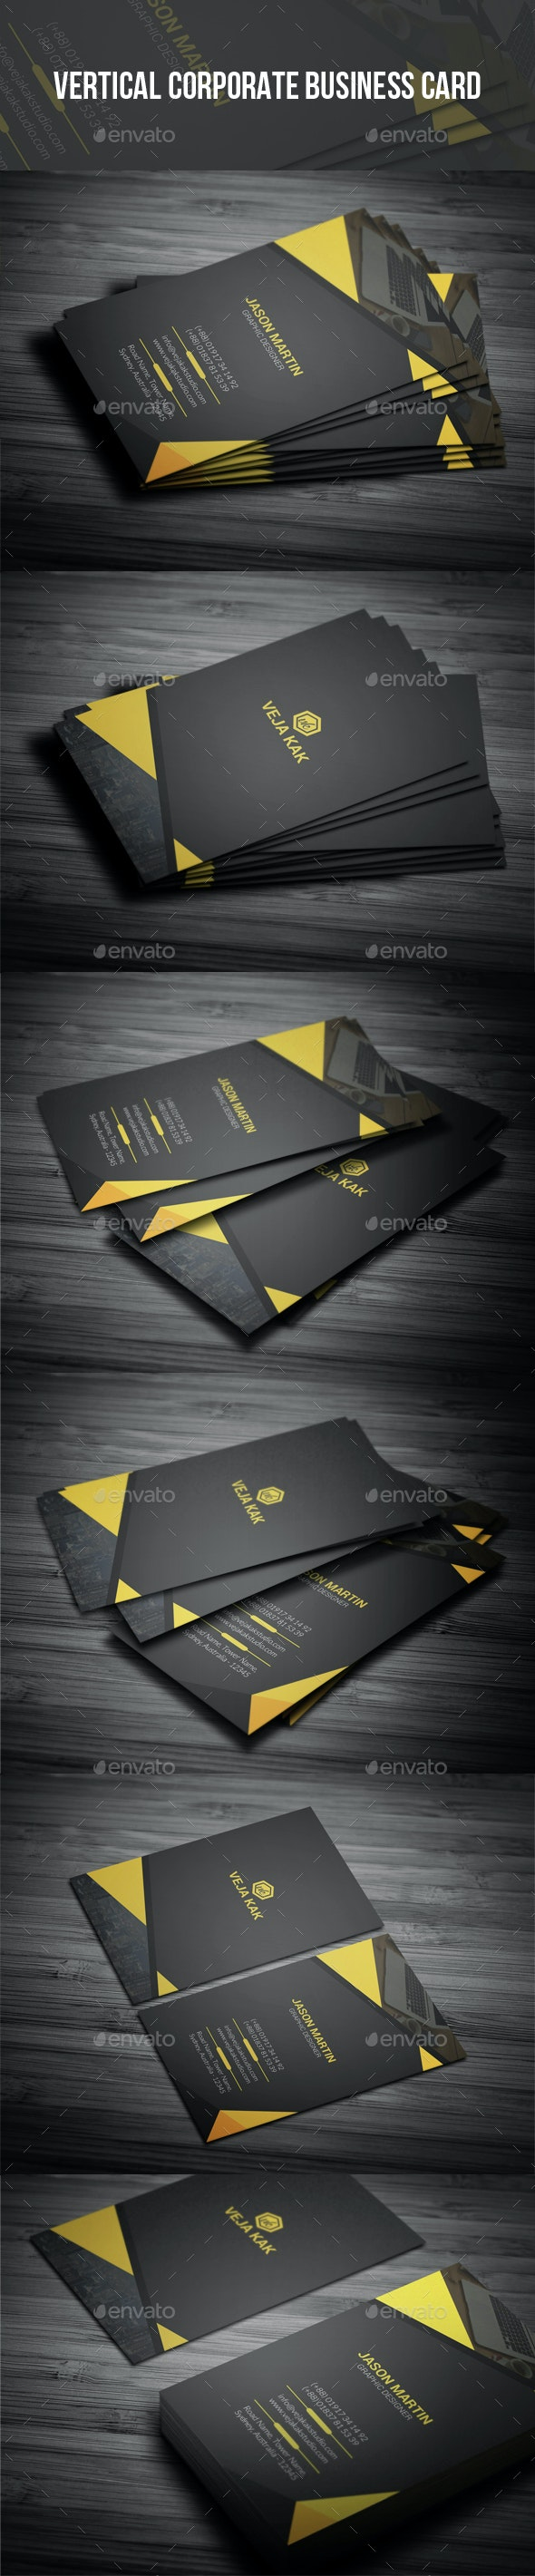 Vertical Corporate Business Card - Corporate Business Cards